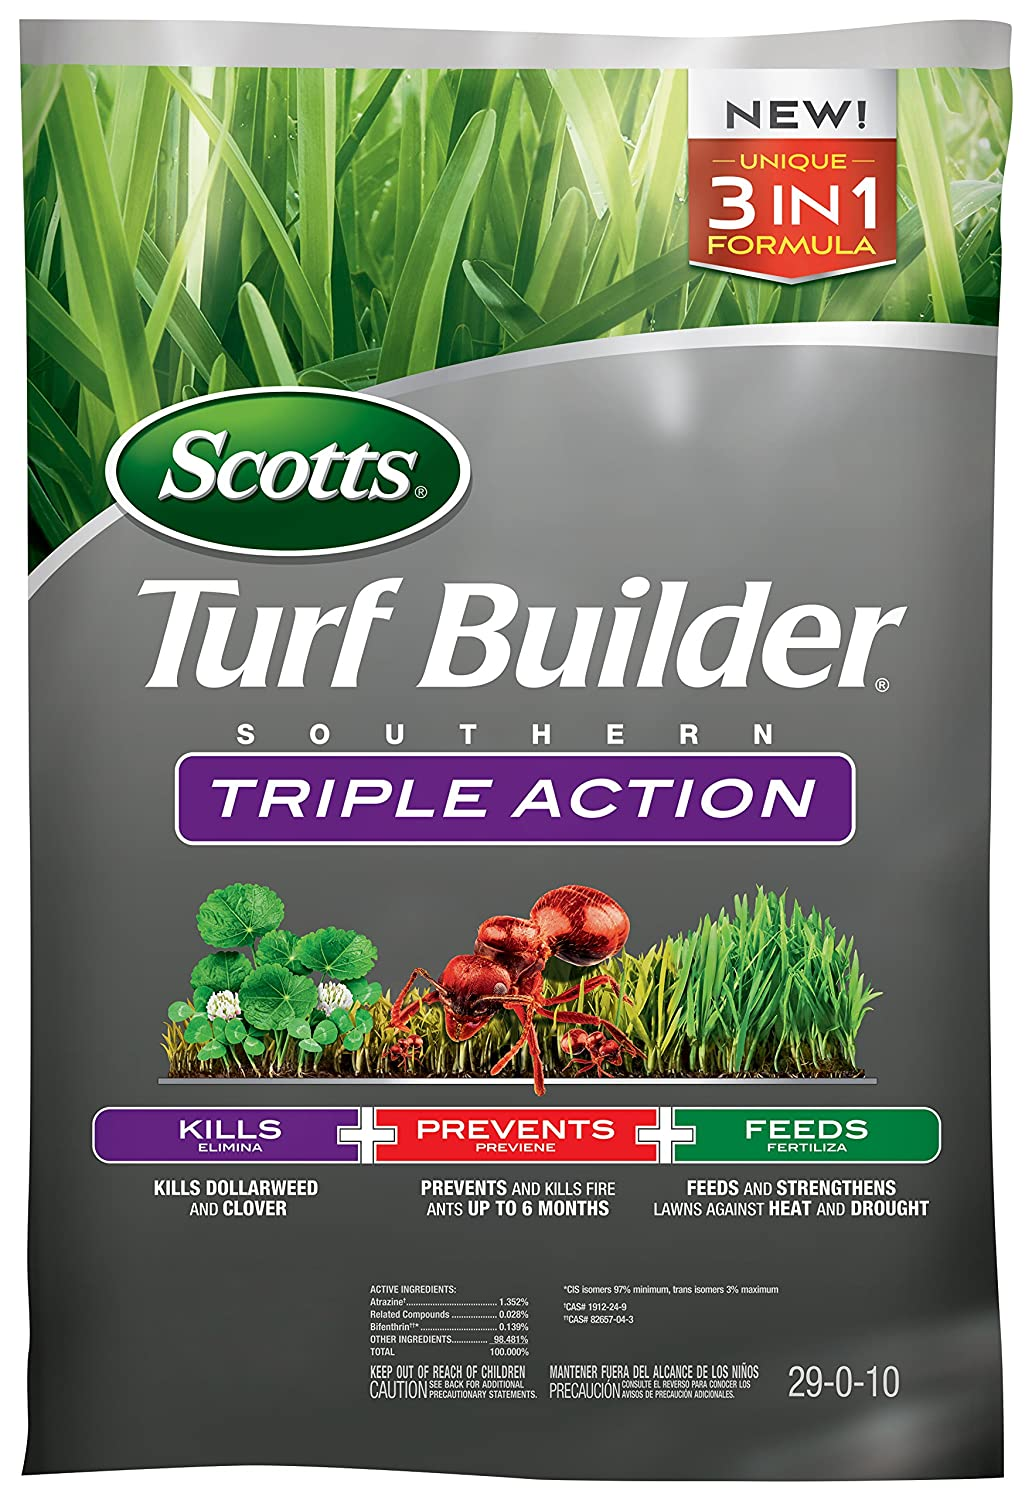 Scotts Turf Builder Southern Triple Action, 26.84 lb. - Kills Dollarweed and Clover, Prevents and Kills Fire Ants, Feeds and Strengthens Lawns - Covers up to 8,000 sq. ft.